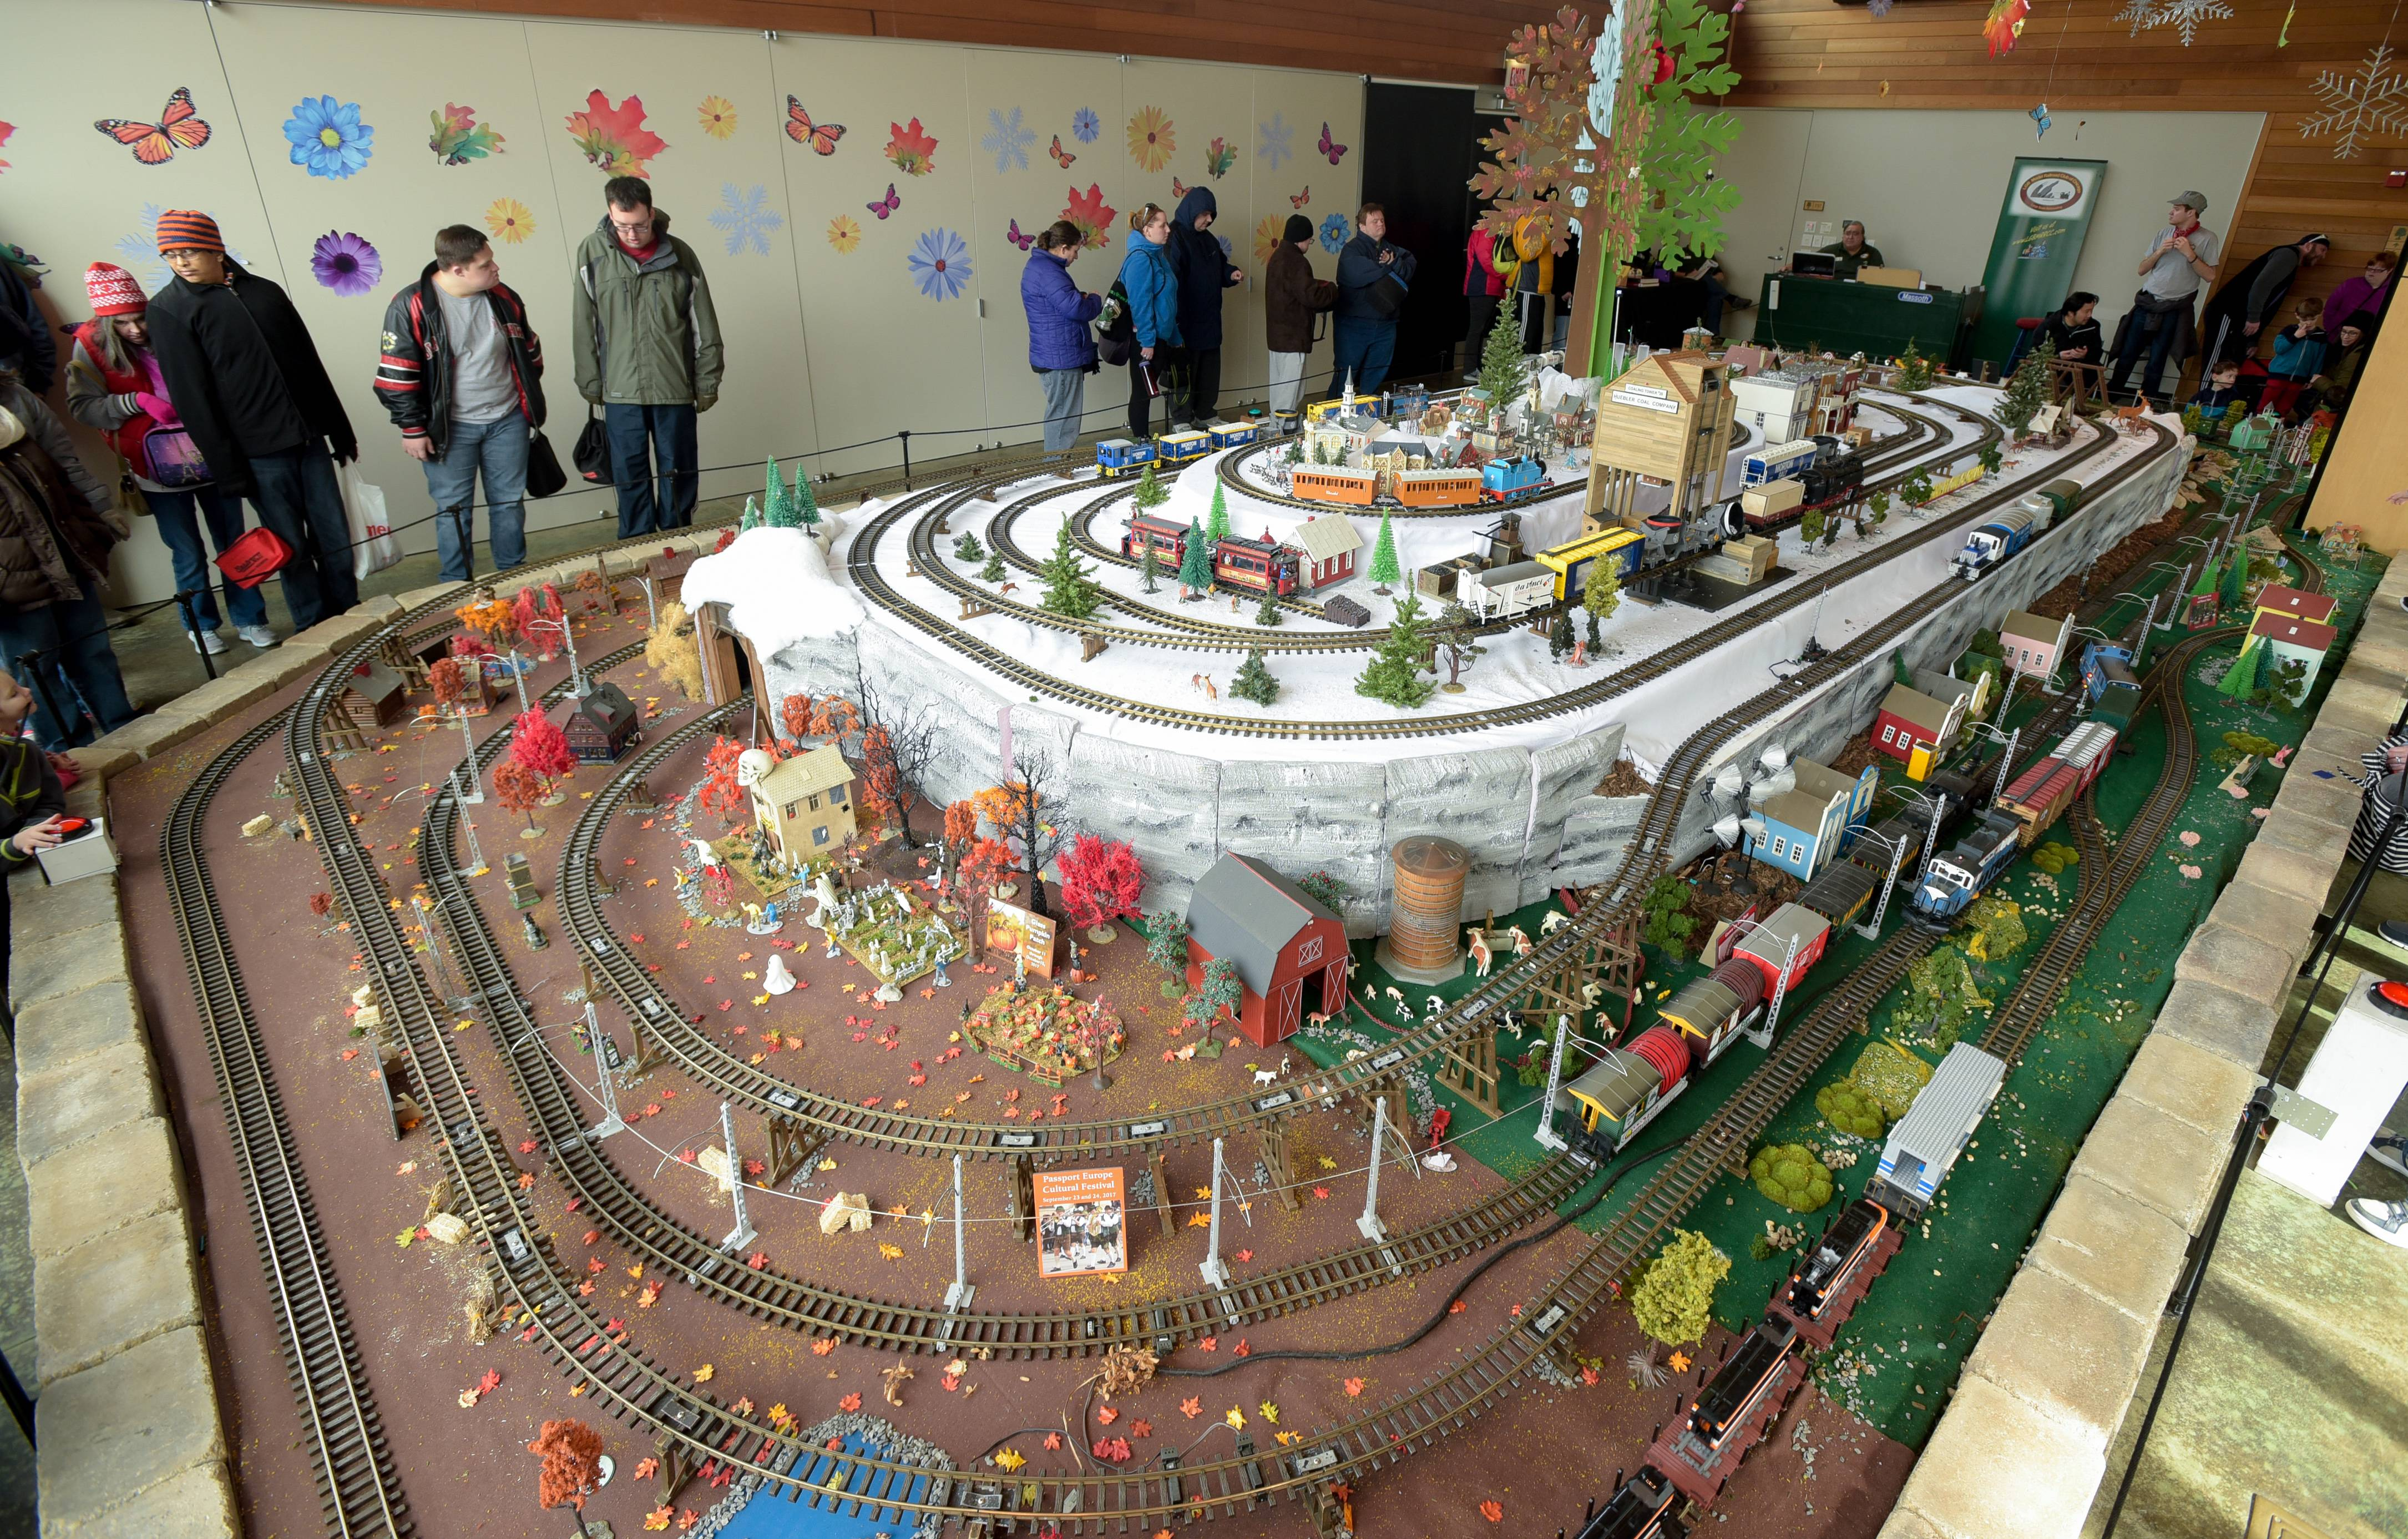 The Enchanted Railroad display will close Sunday evening after a monthlong run at the Morton Arboretum in Lisle.